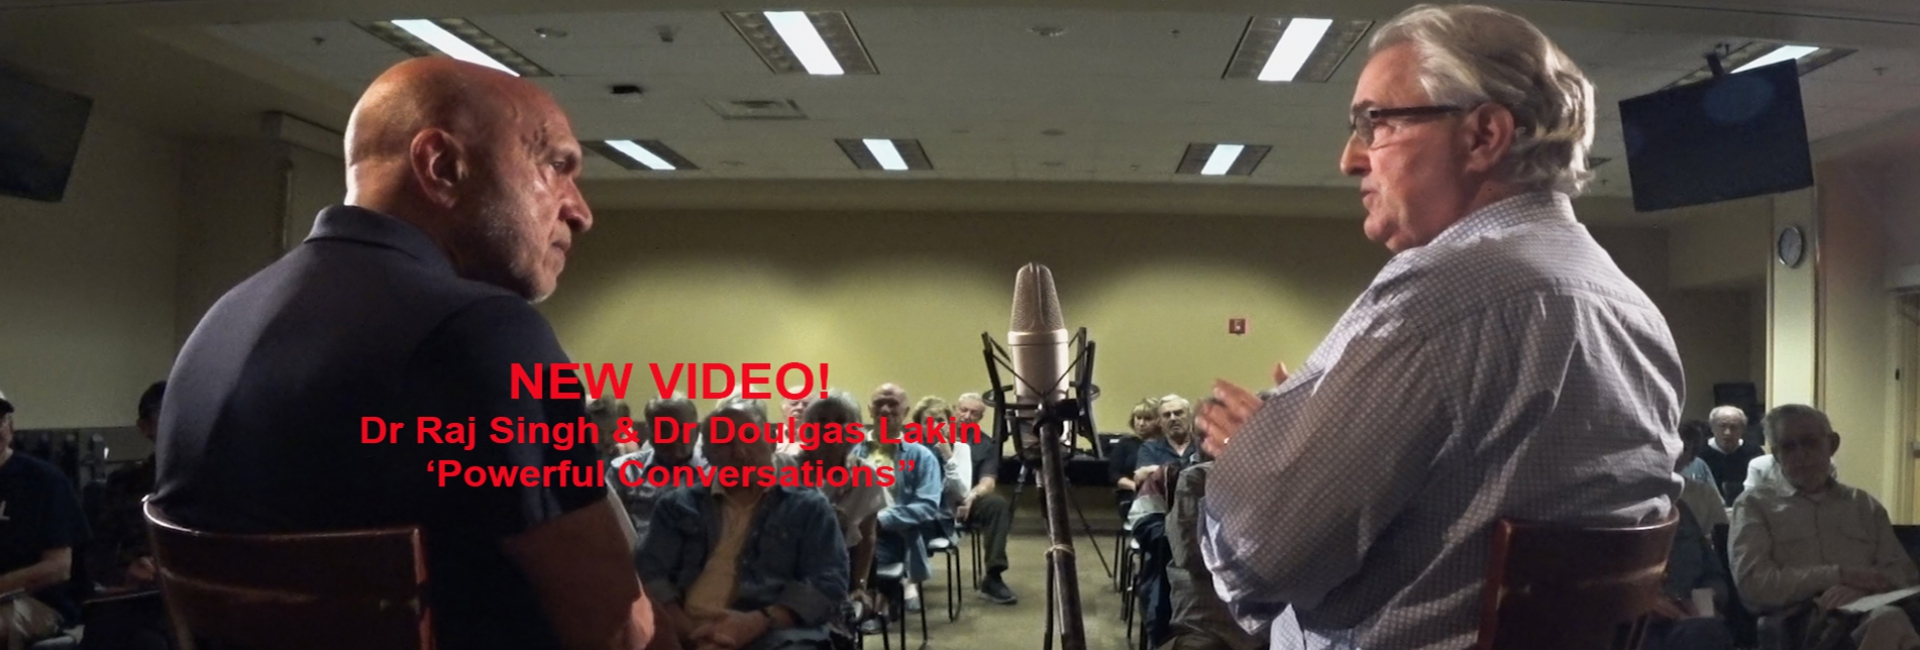 NEW VIDEO: DR LAKIN & DR SINGH, POWERFUL CONVERSATIONS